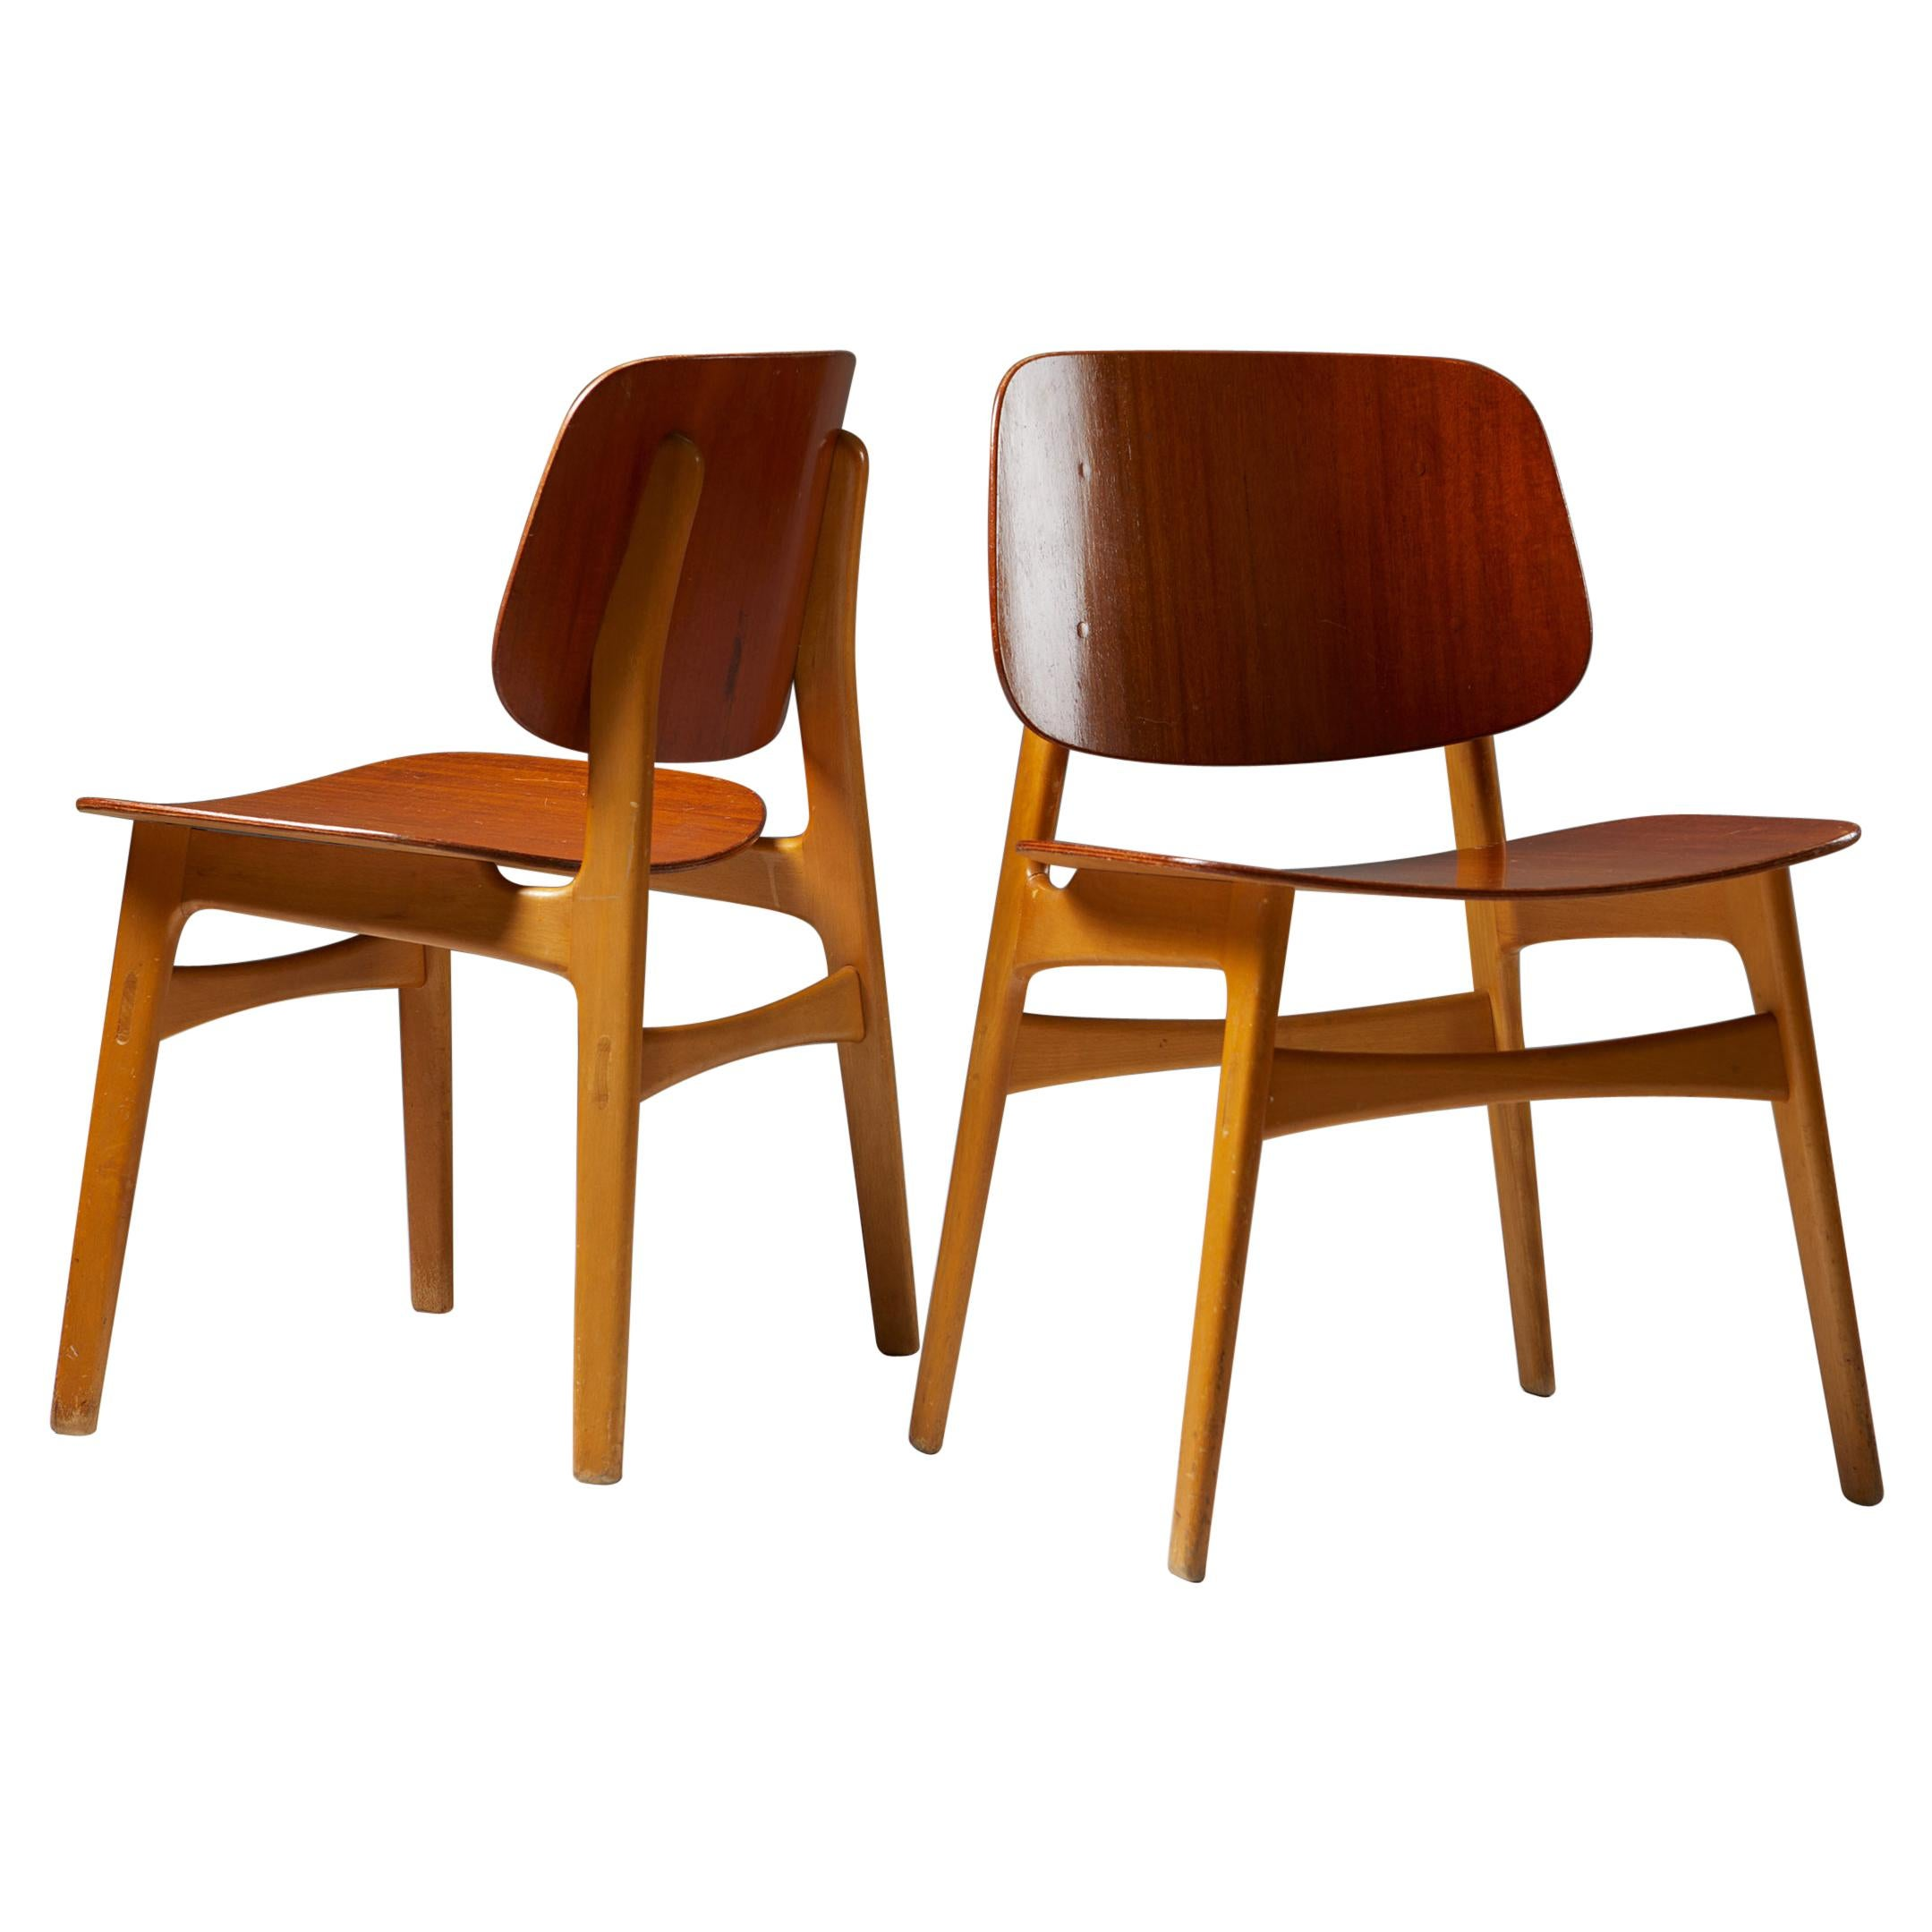 Pair of Chairs Designed by Börge Mogensen, Denmark, 1960's